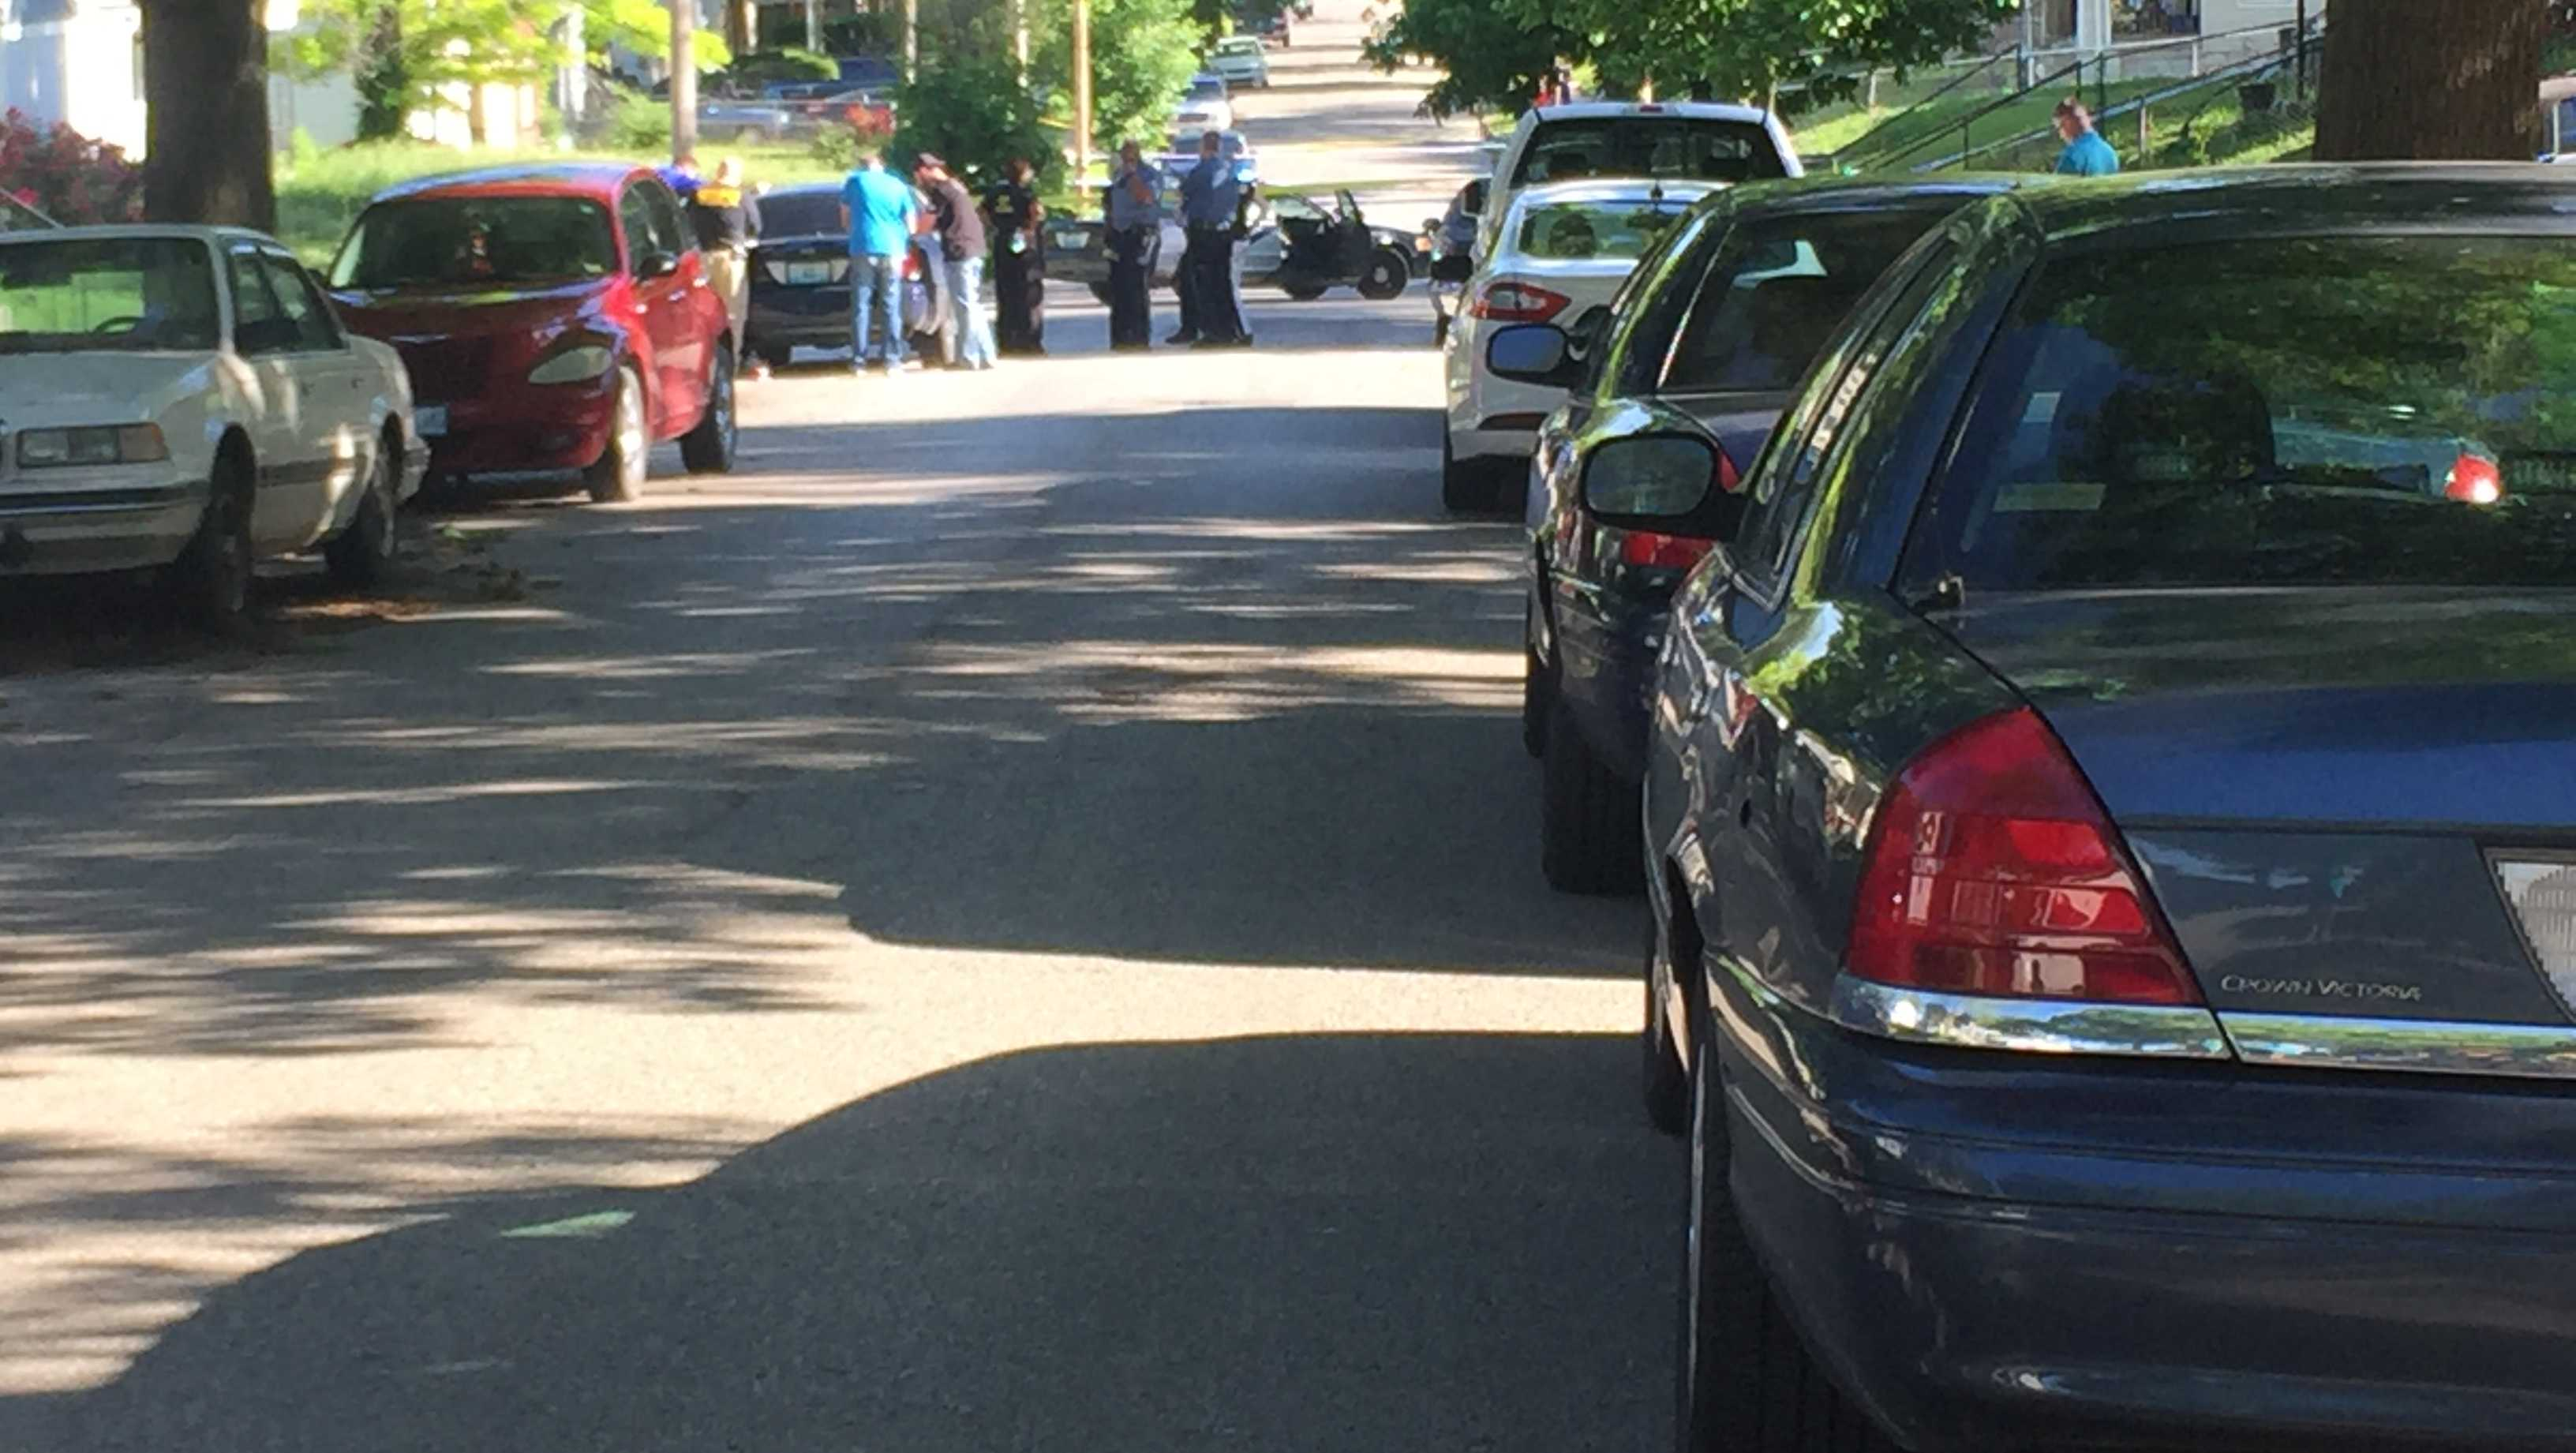 Child dies in triple shooting at 54th and Park